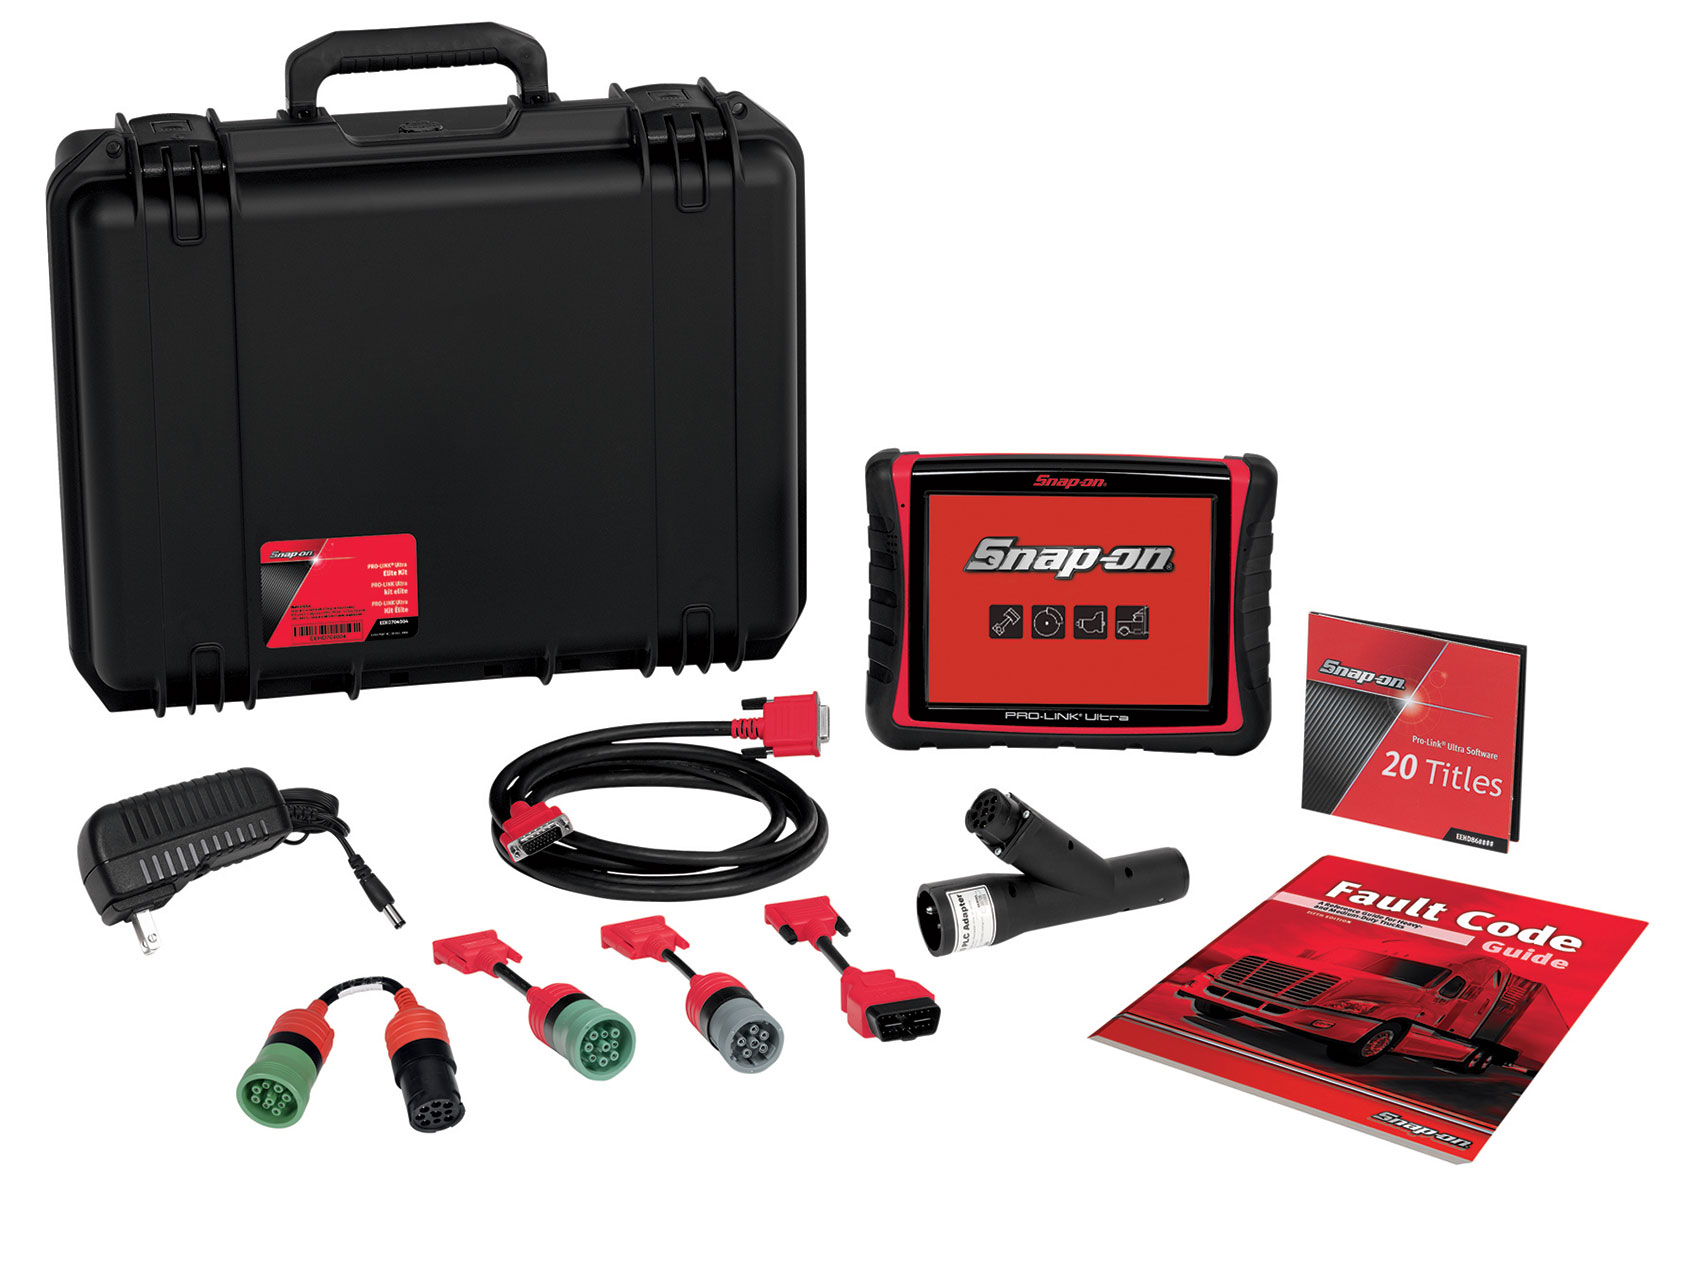 PRO-LINK Ultra Vehicle Diagnostic Tool | Snap-on Diagnostics